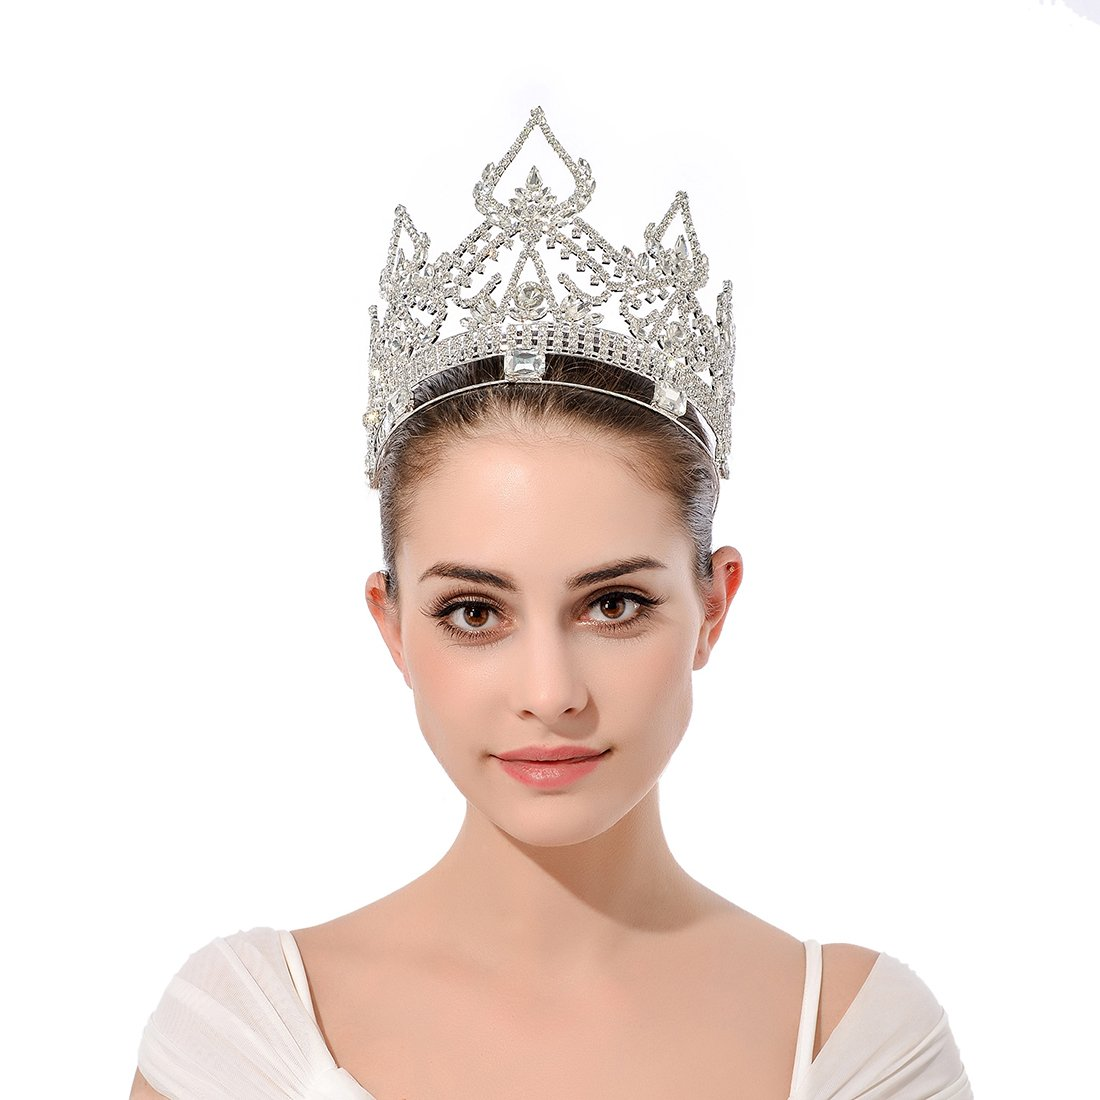 DcZeRong Women Crowns Queen Crowns For Women Prom Pageant Party Rhinestone Crystal Full Crowns by DcZeRong (Image #8)